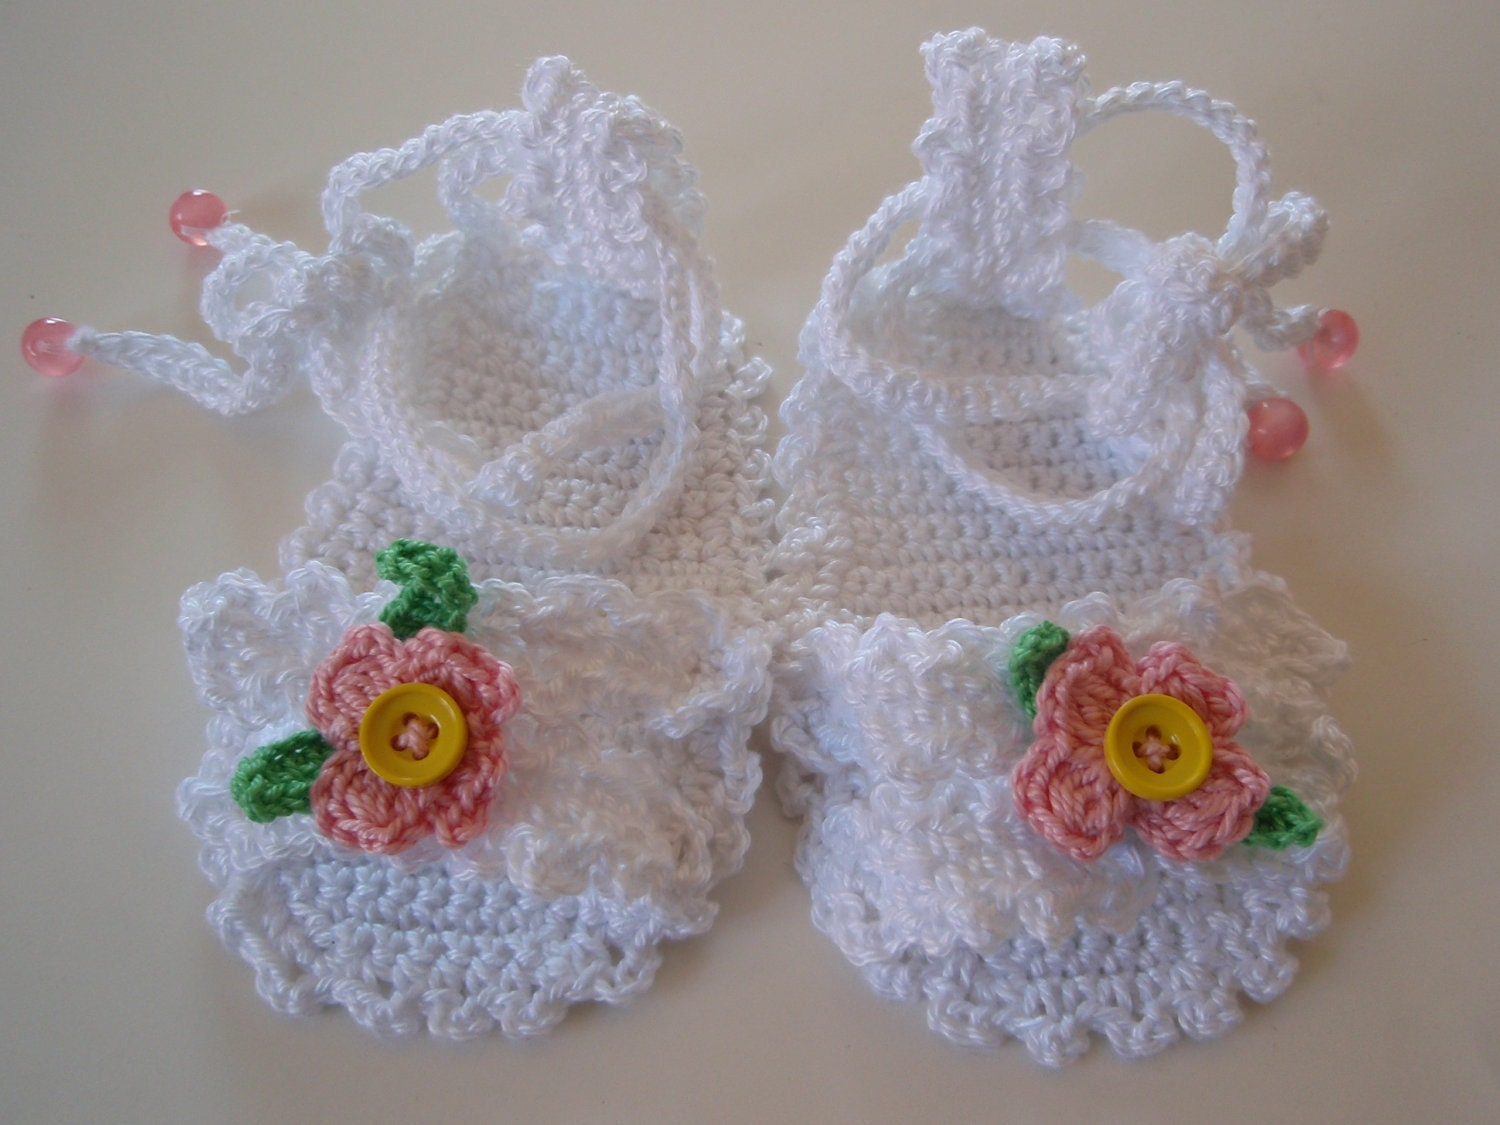 Crochet Baby Shoes Pattern Free Amazing Ideas